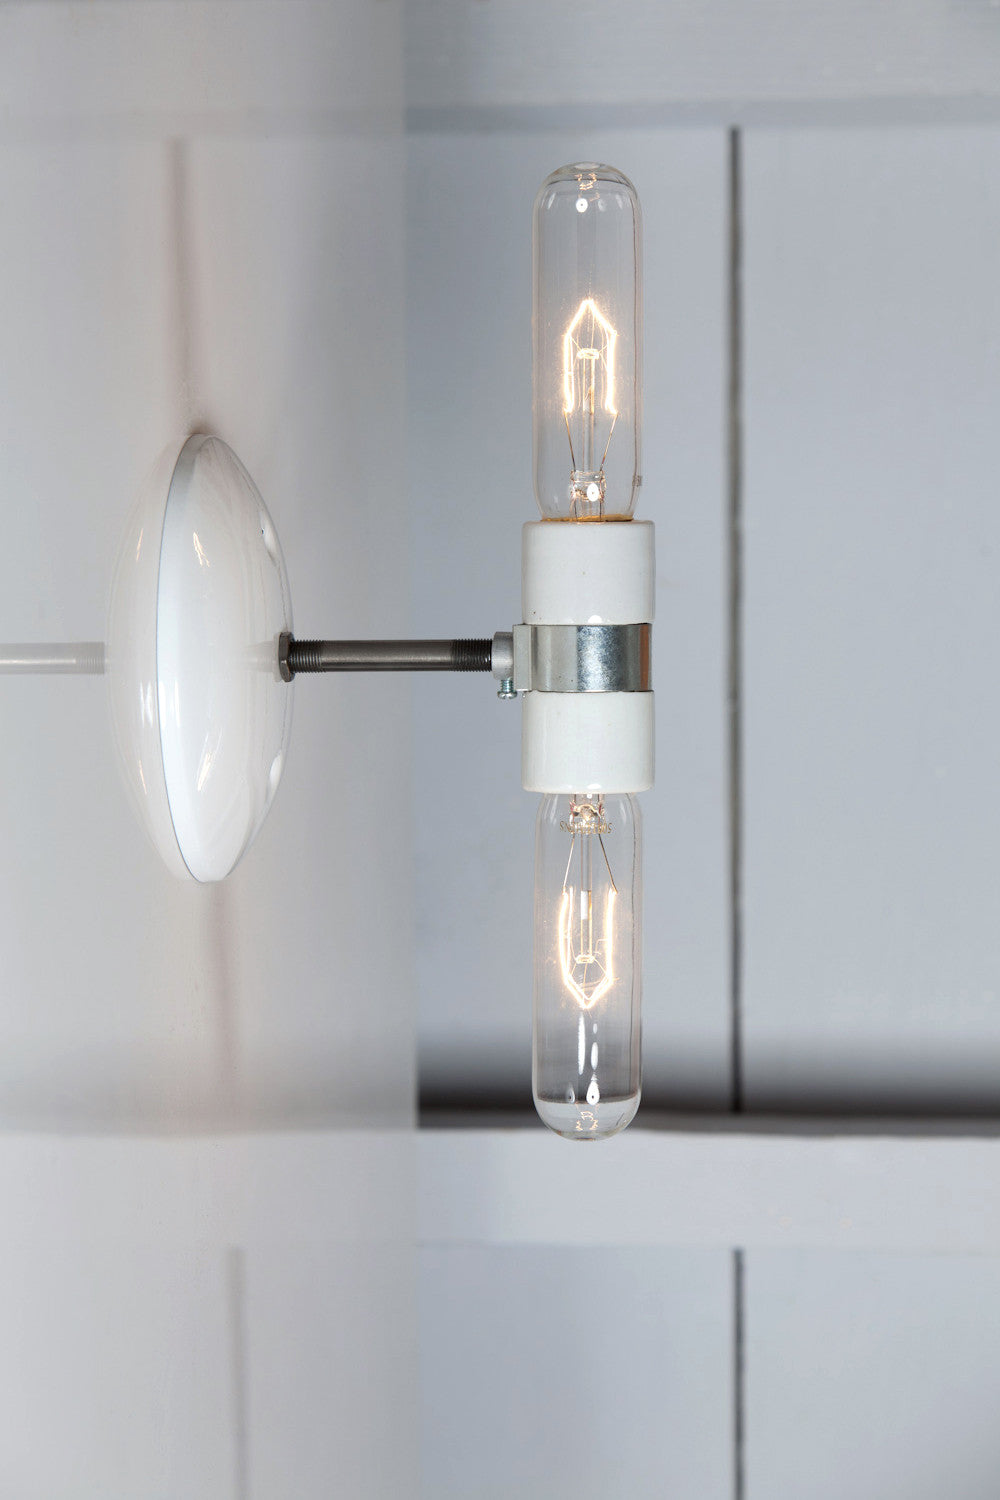 bare bulb lighting. Double Wall Sconce - Industrial Light Bare Bulb Lamp Lighting B